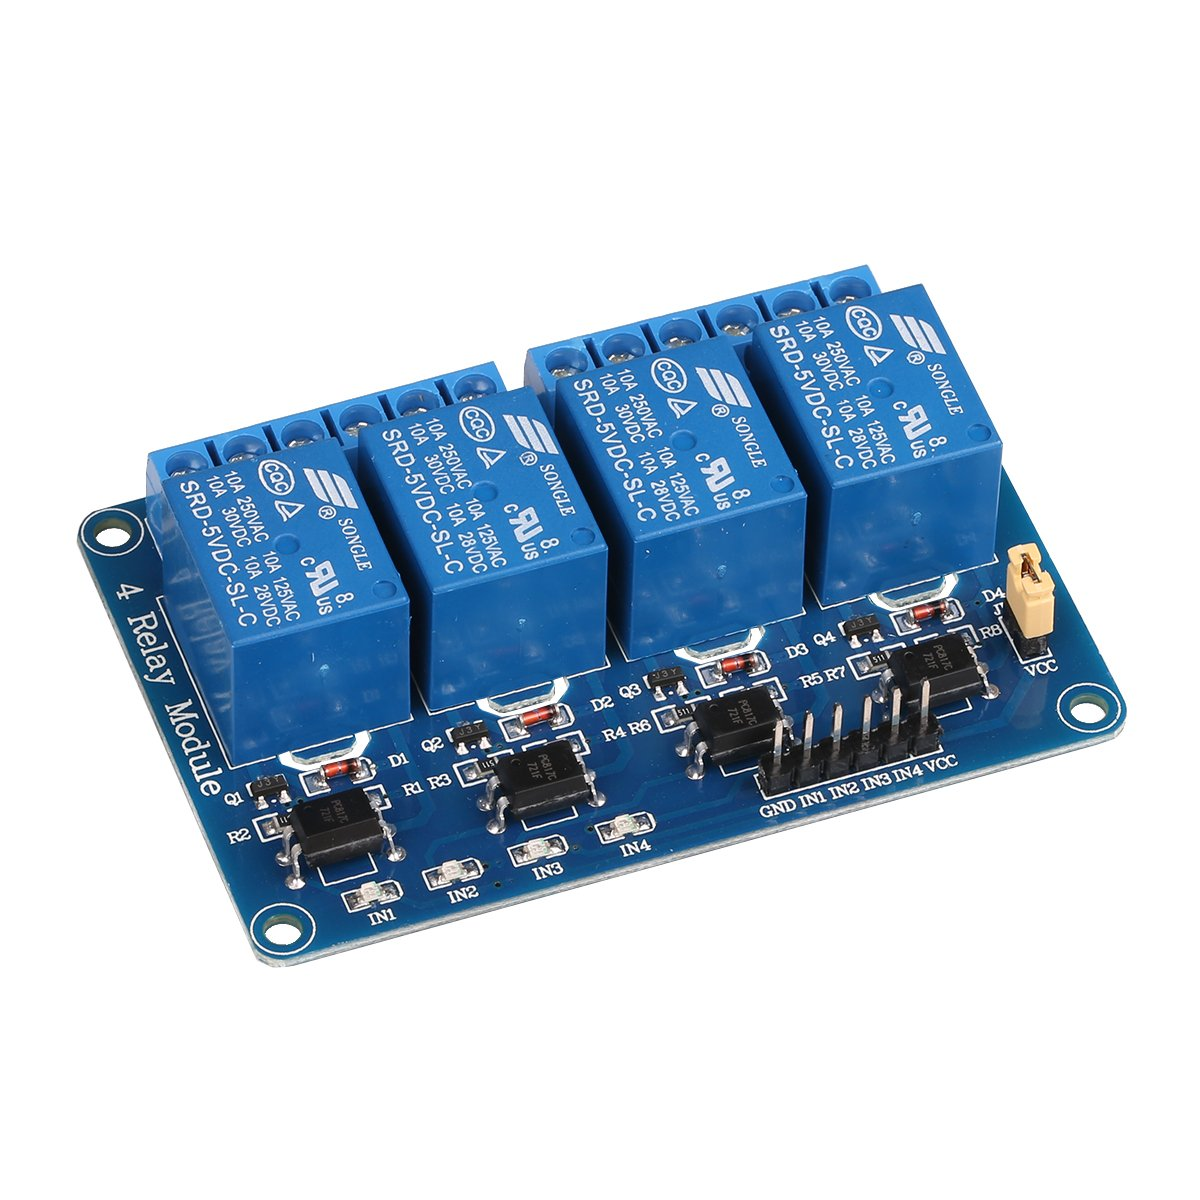 Jbtek 4 Channel Dc 5v Relay Module For Arduino Raspberry Rangkaian On Off Pi Dsp Avr Pic Arm Computers Accessories